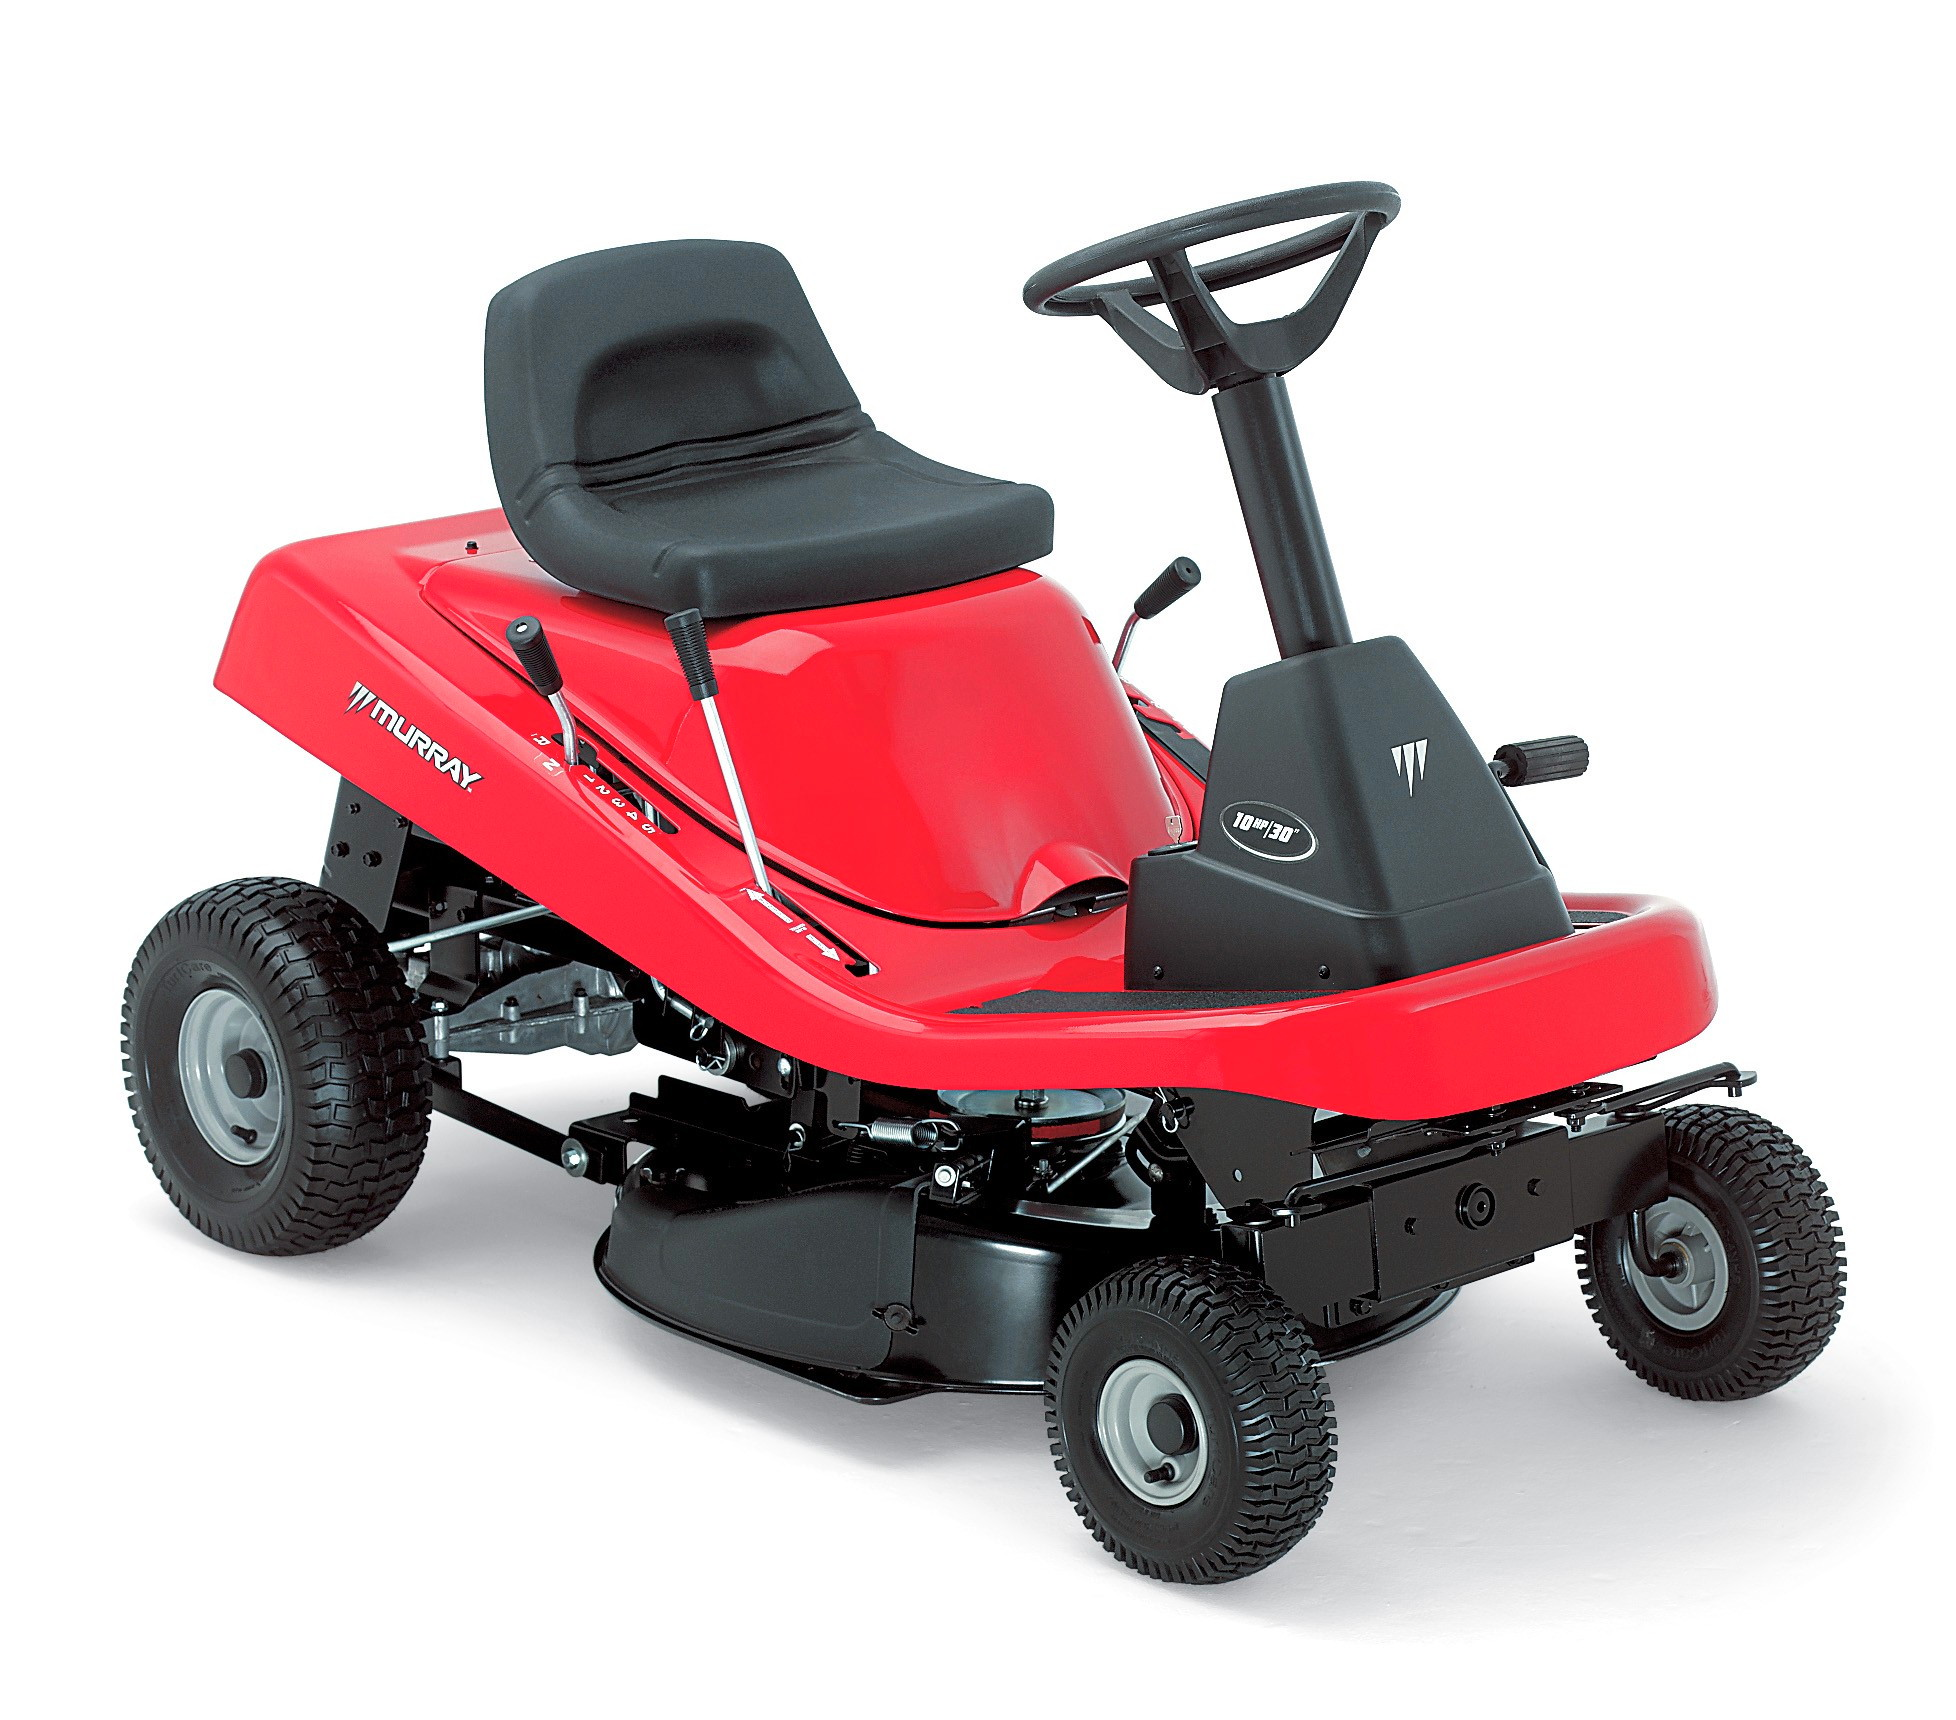 Murray Garden Tractor : Murray inc recall of lawn mowers and tractors